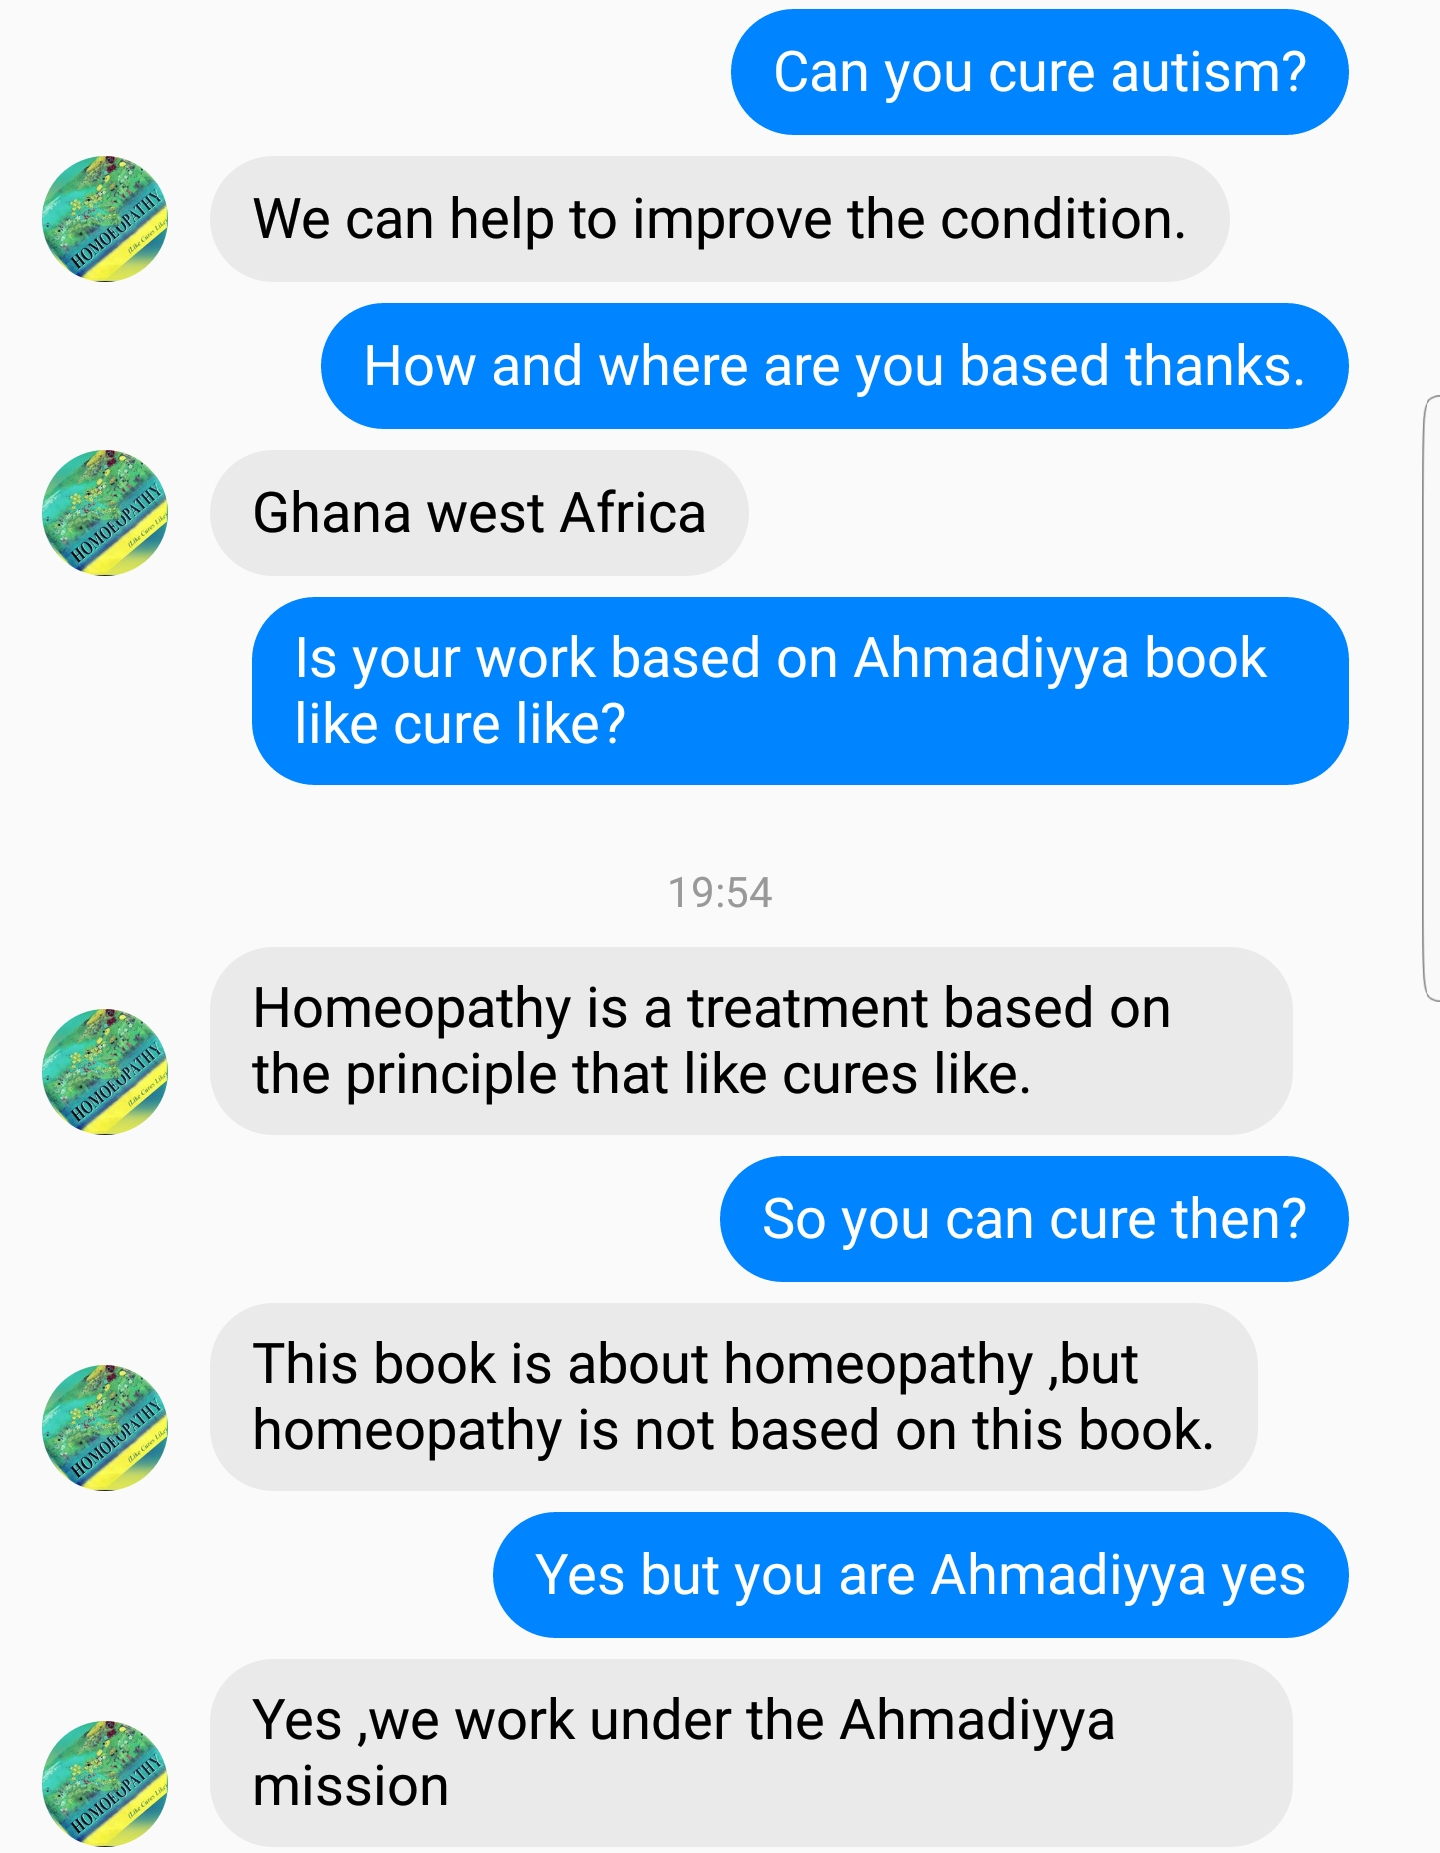 Ahmadiyya Promote Pseudoscientific Treatment Homeopathy And